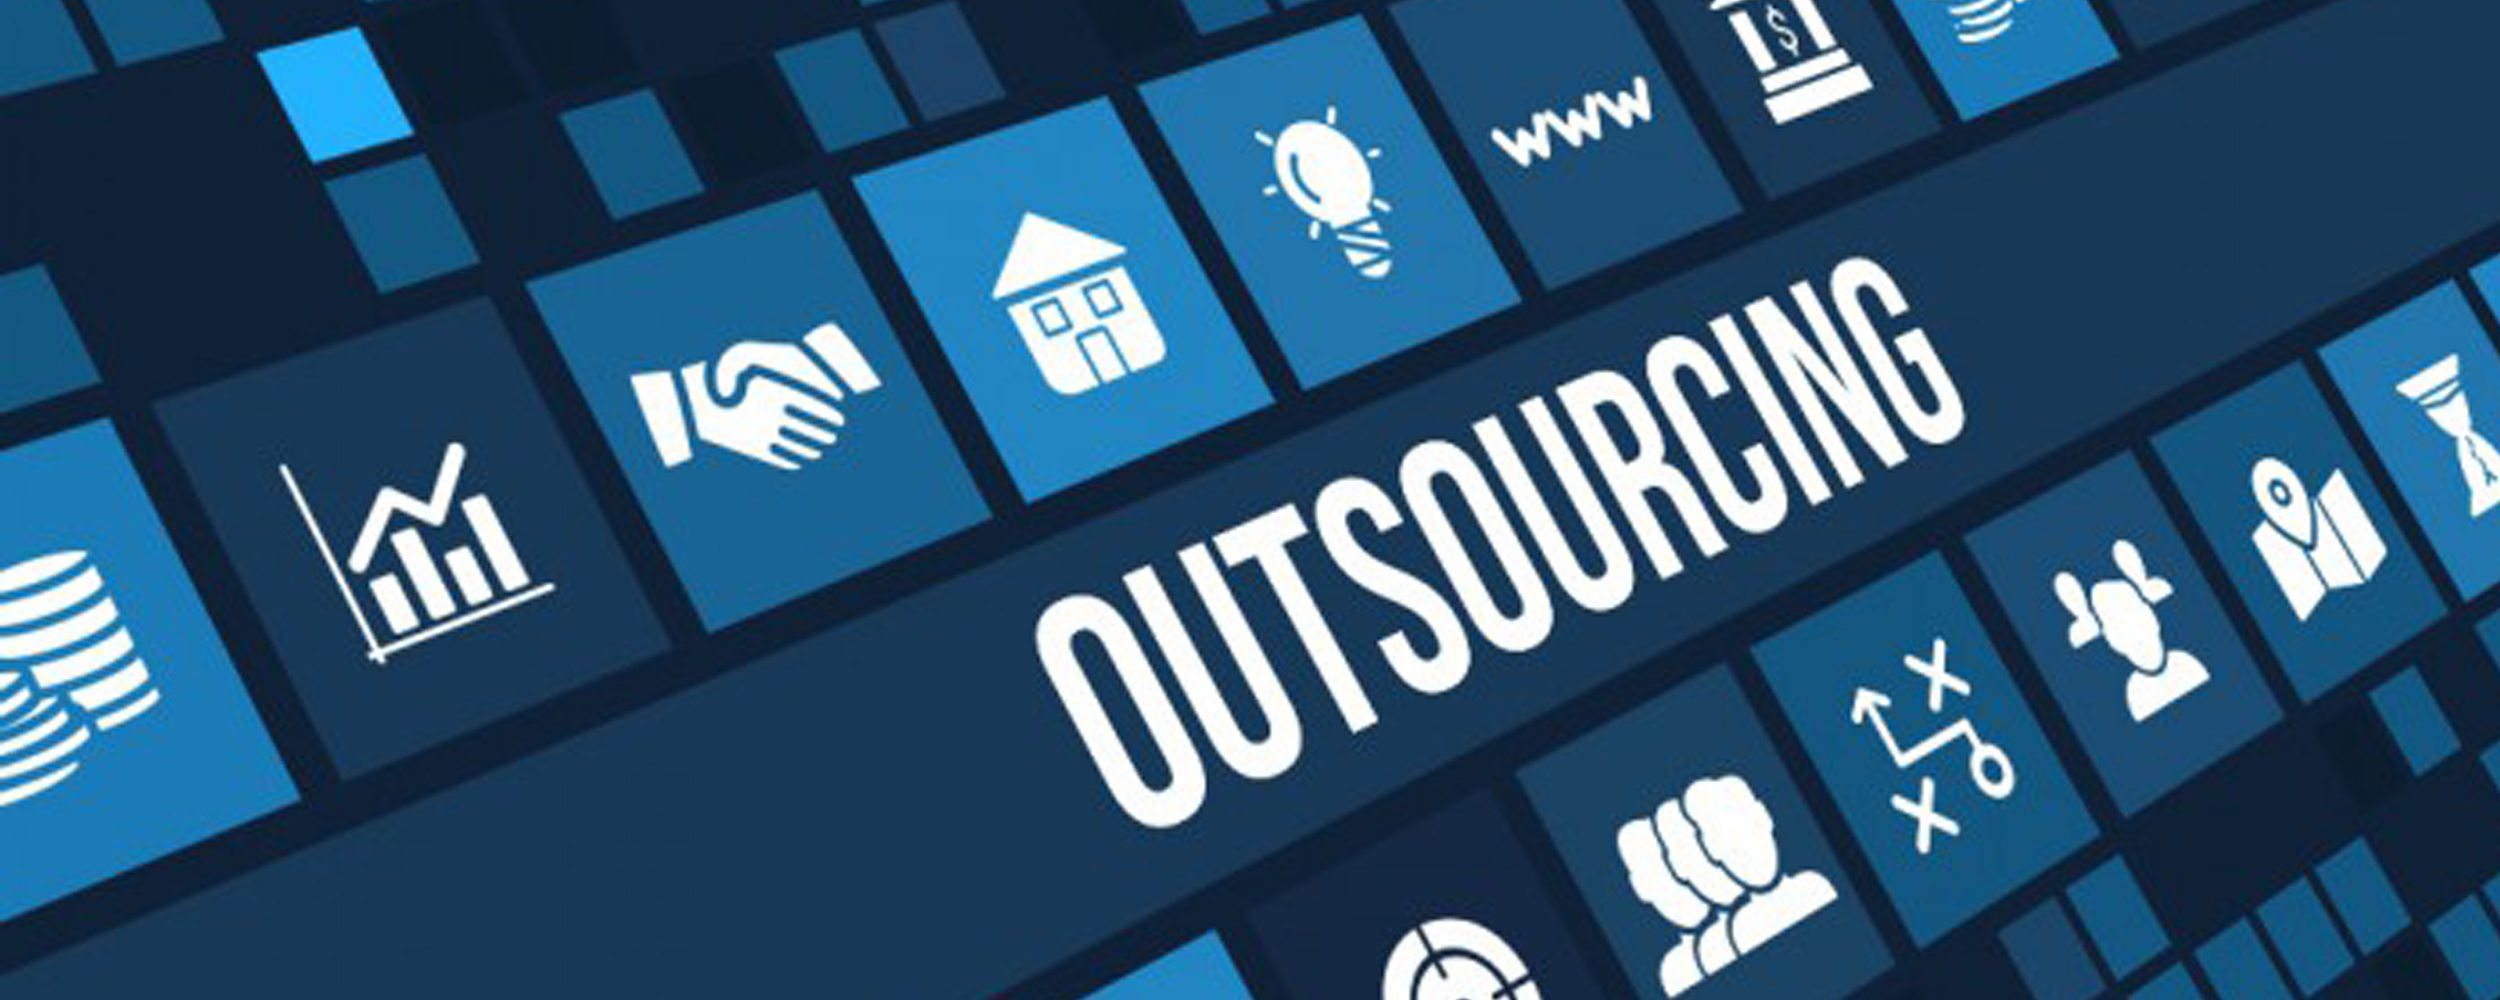 Important Questions to Ask Before Choosing an Outsourced Bookkeeping Partner